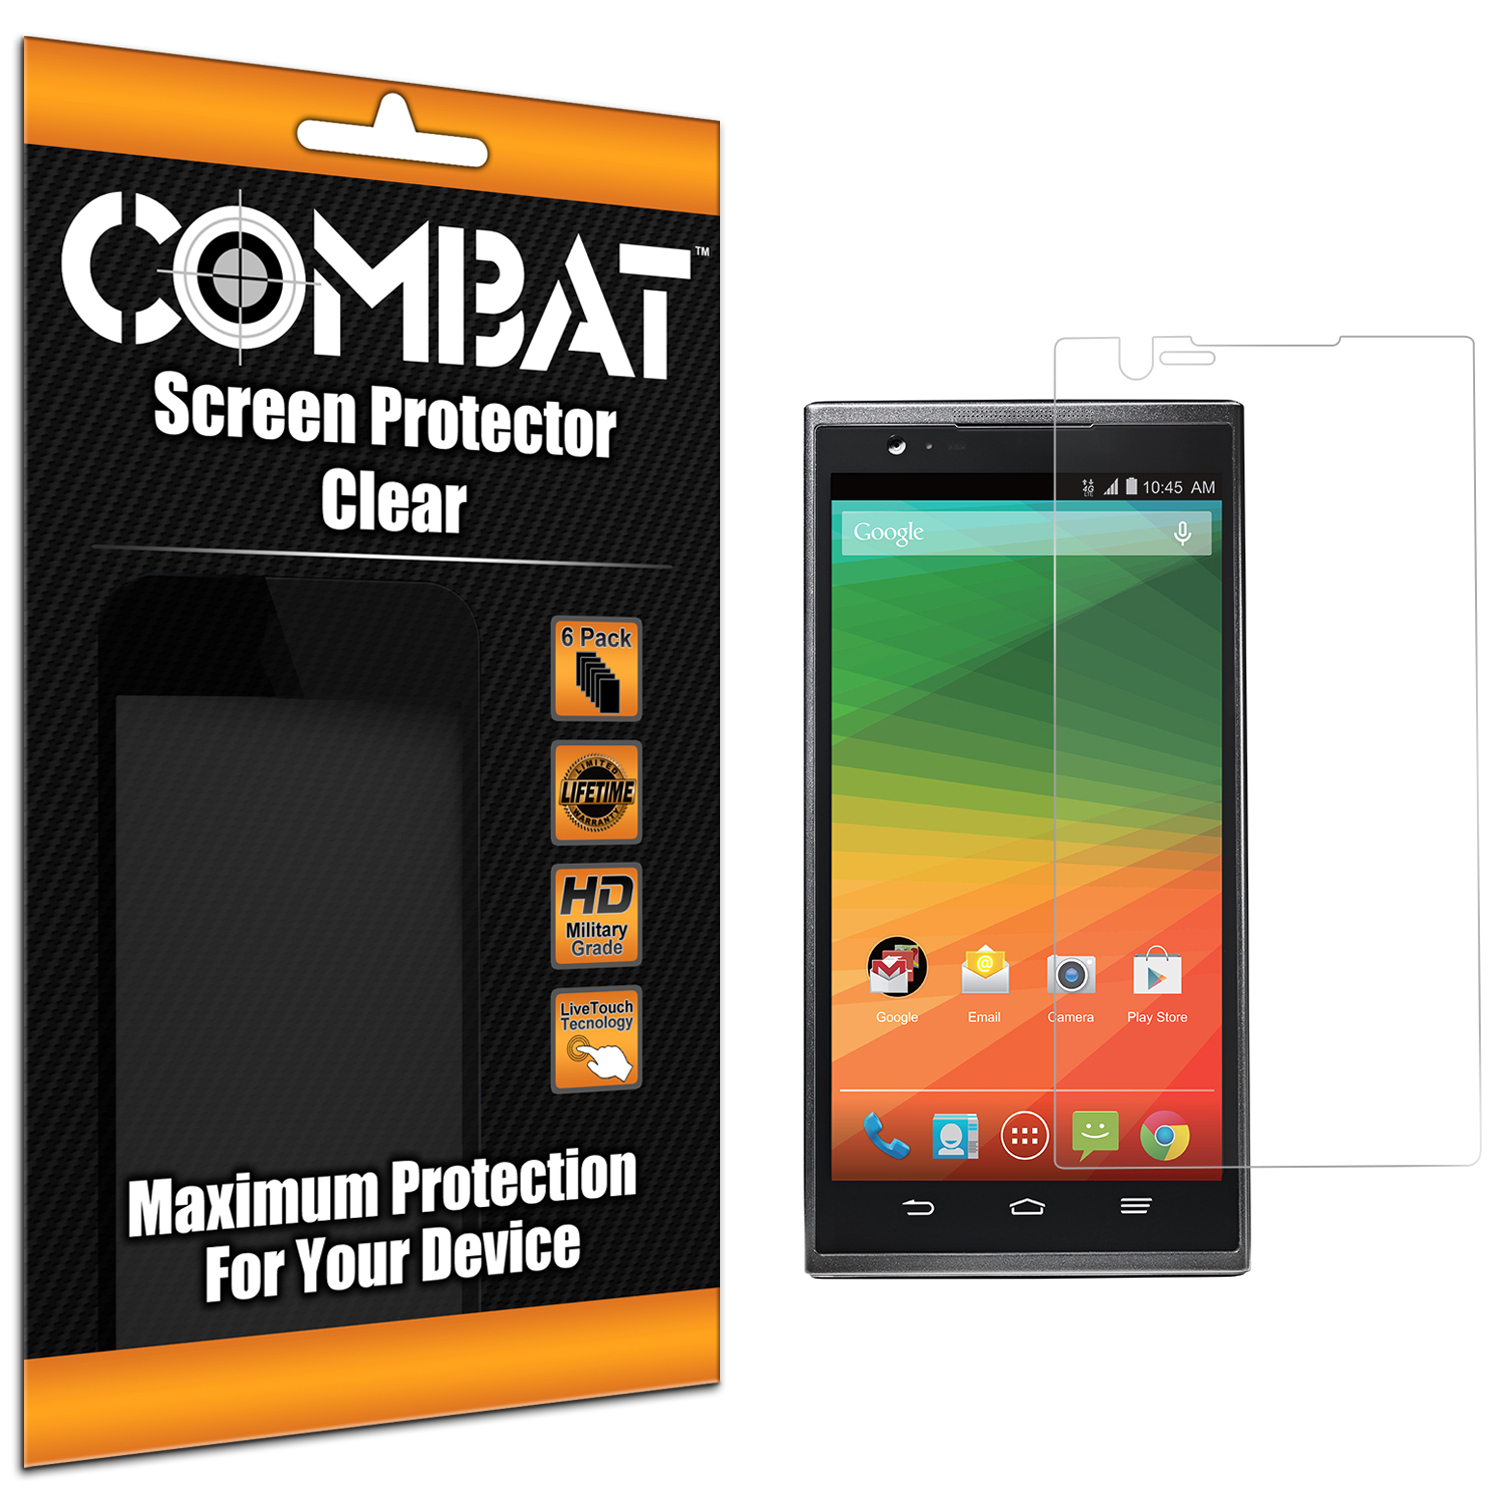 ZTE Zmax Combat 6 Pack HD Clear Screen Protector